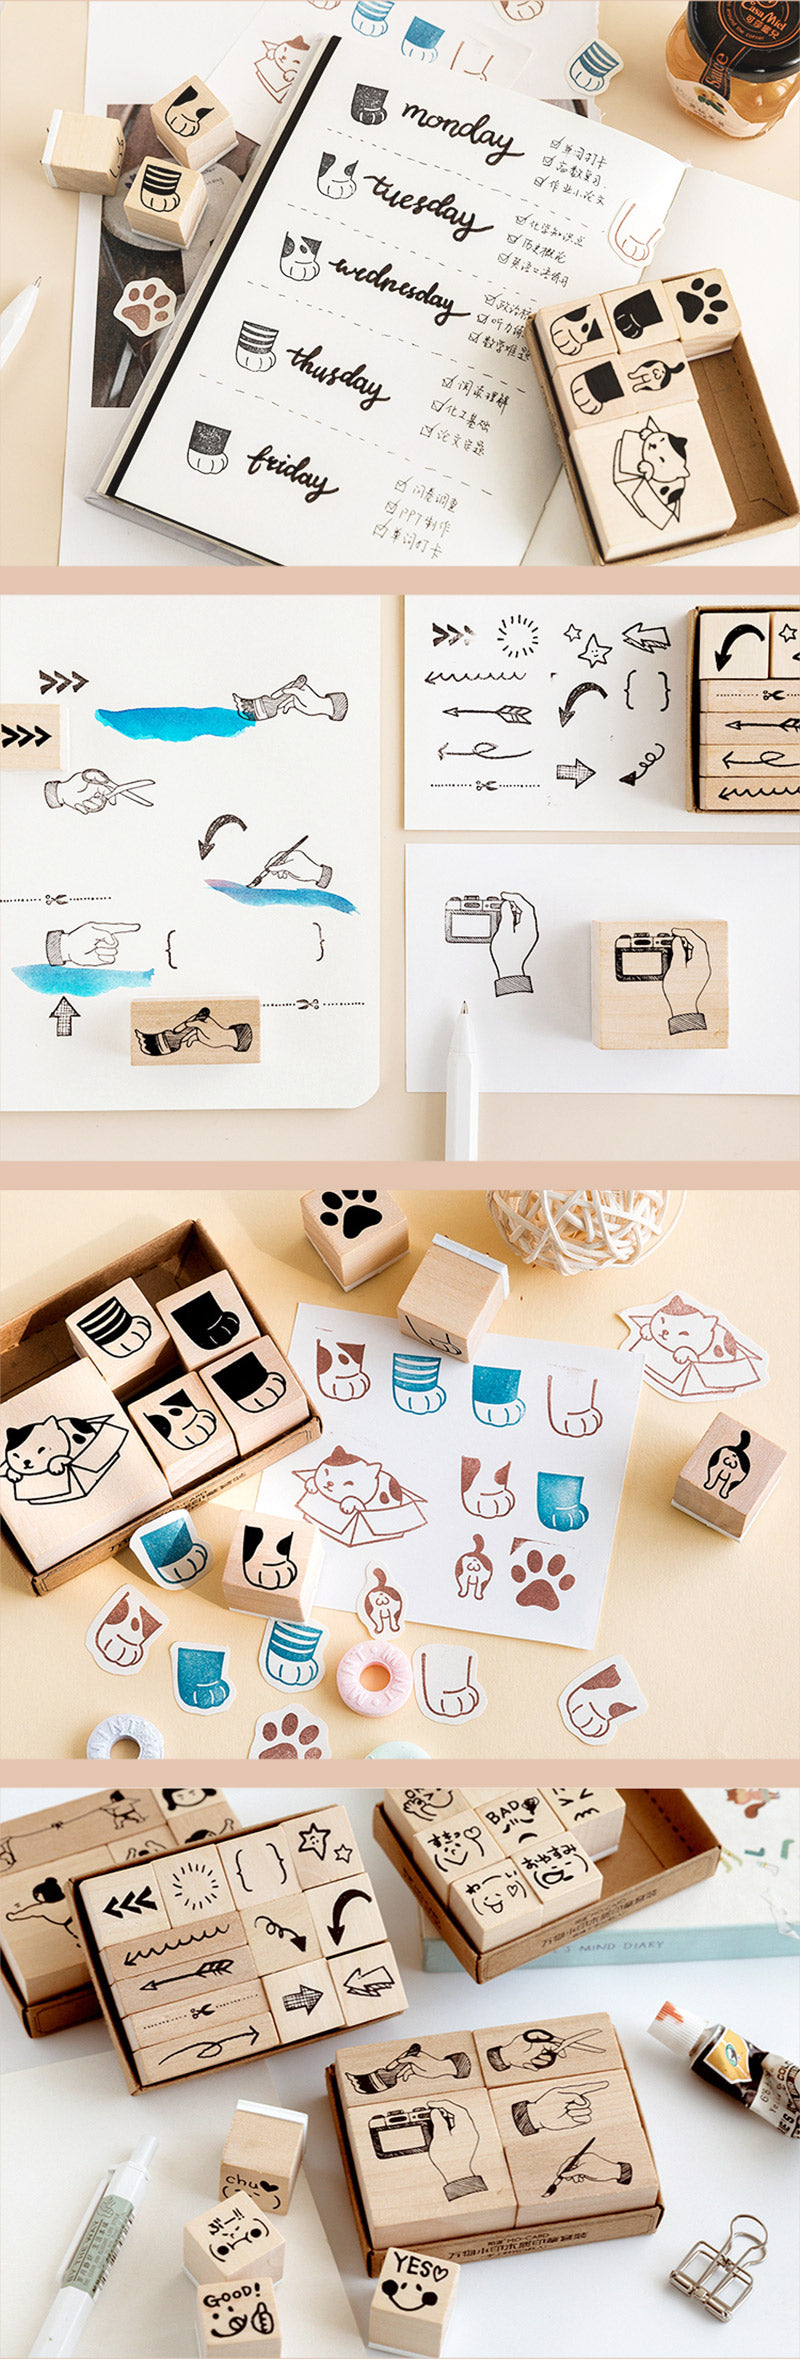 Life Style Wooden Stamp Set - Detail